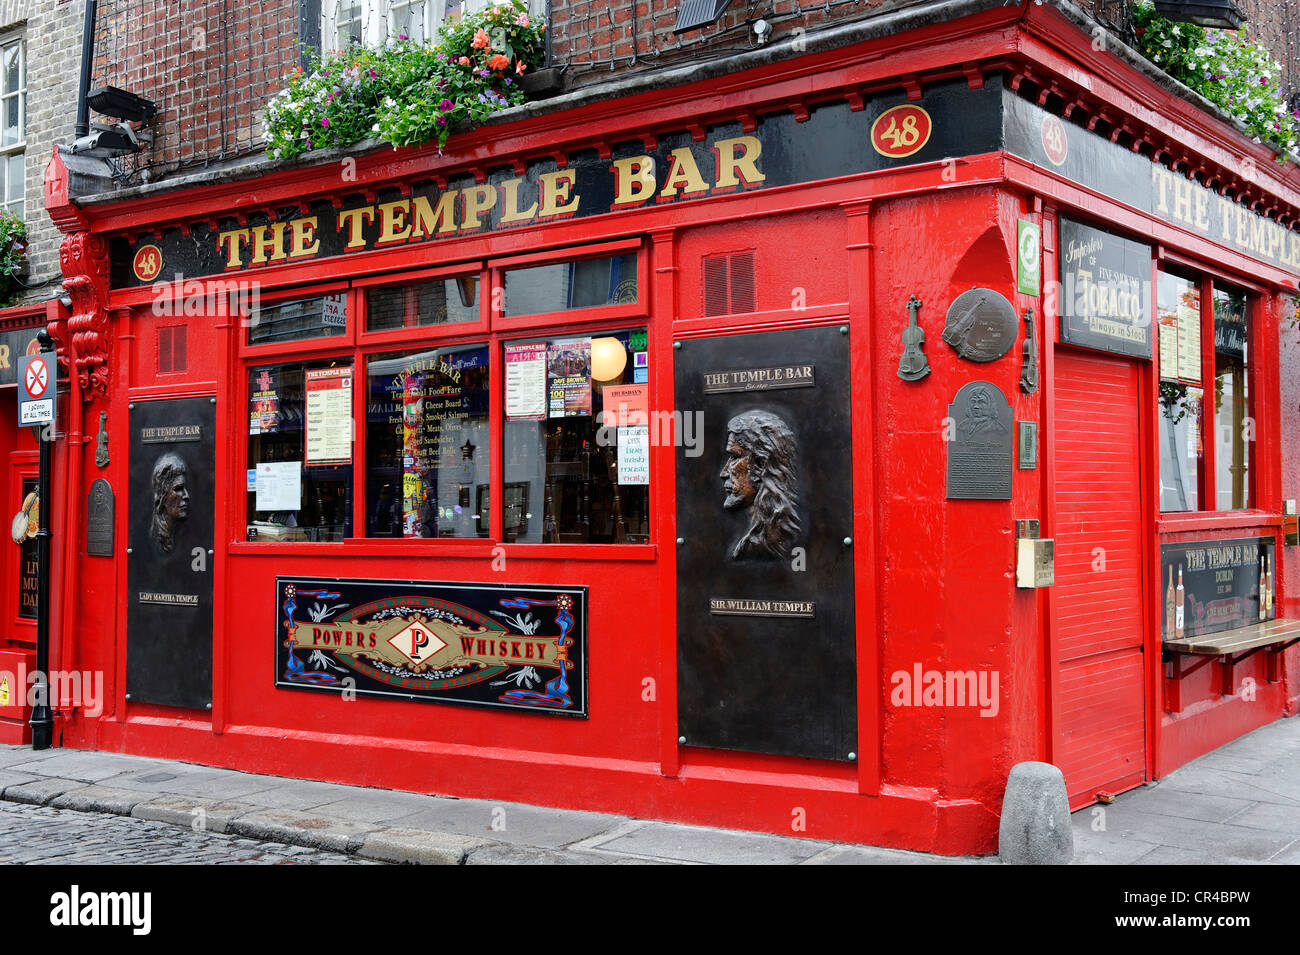 The Temple Bar, Crown Alley, Dublin, Republic of Ireland, Europe - Stock Image